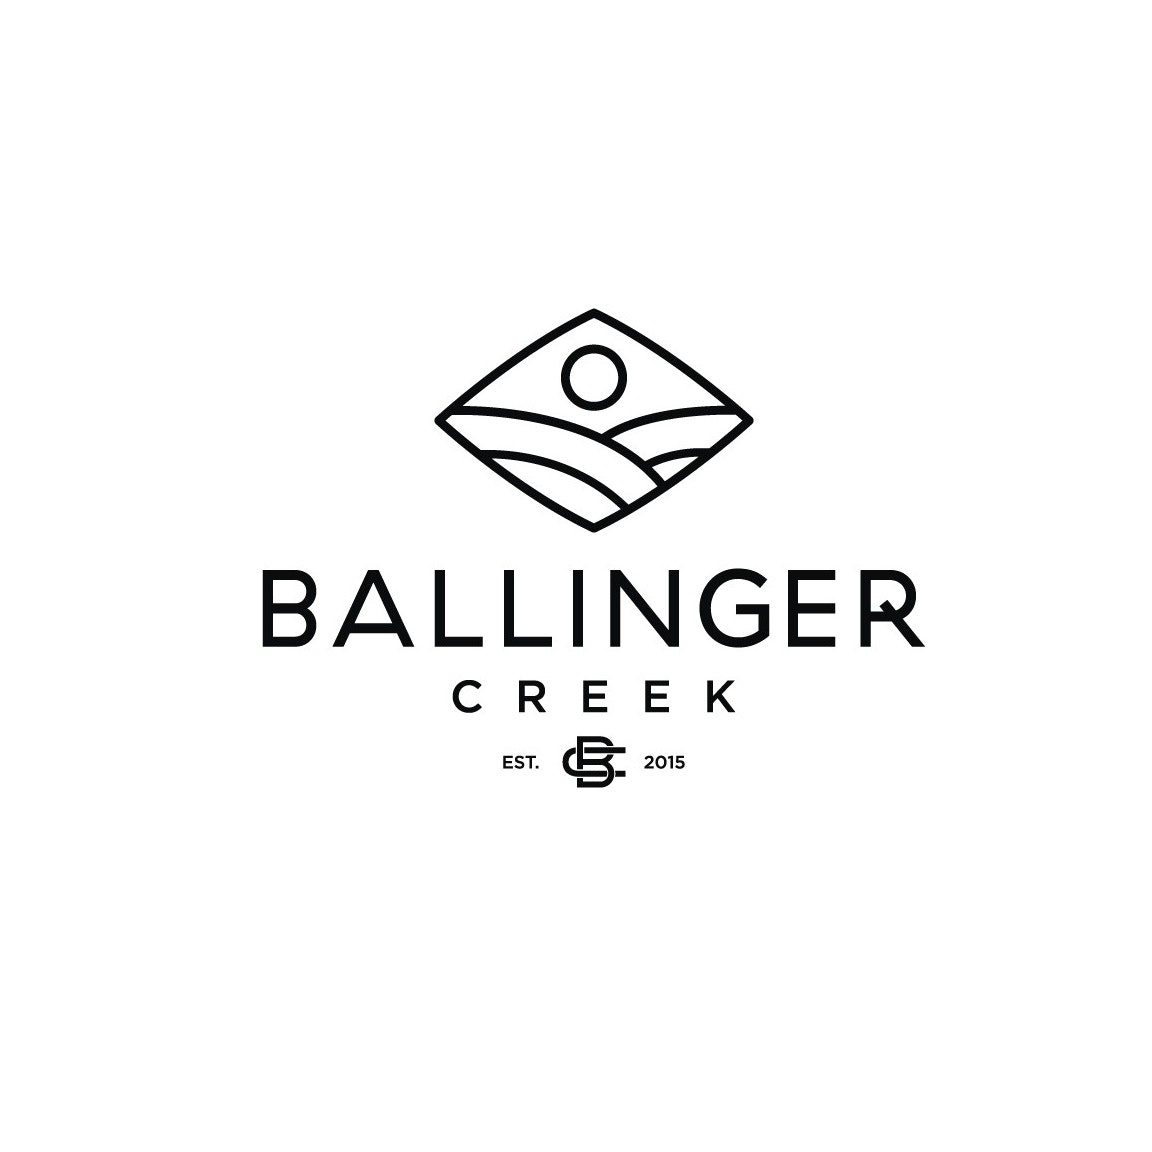 Ballinger Creek